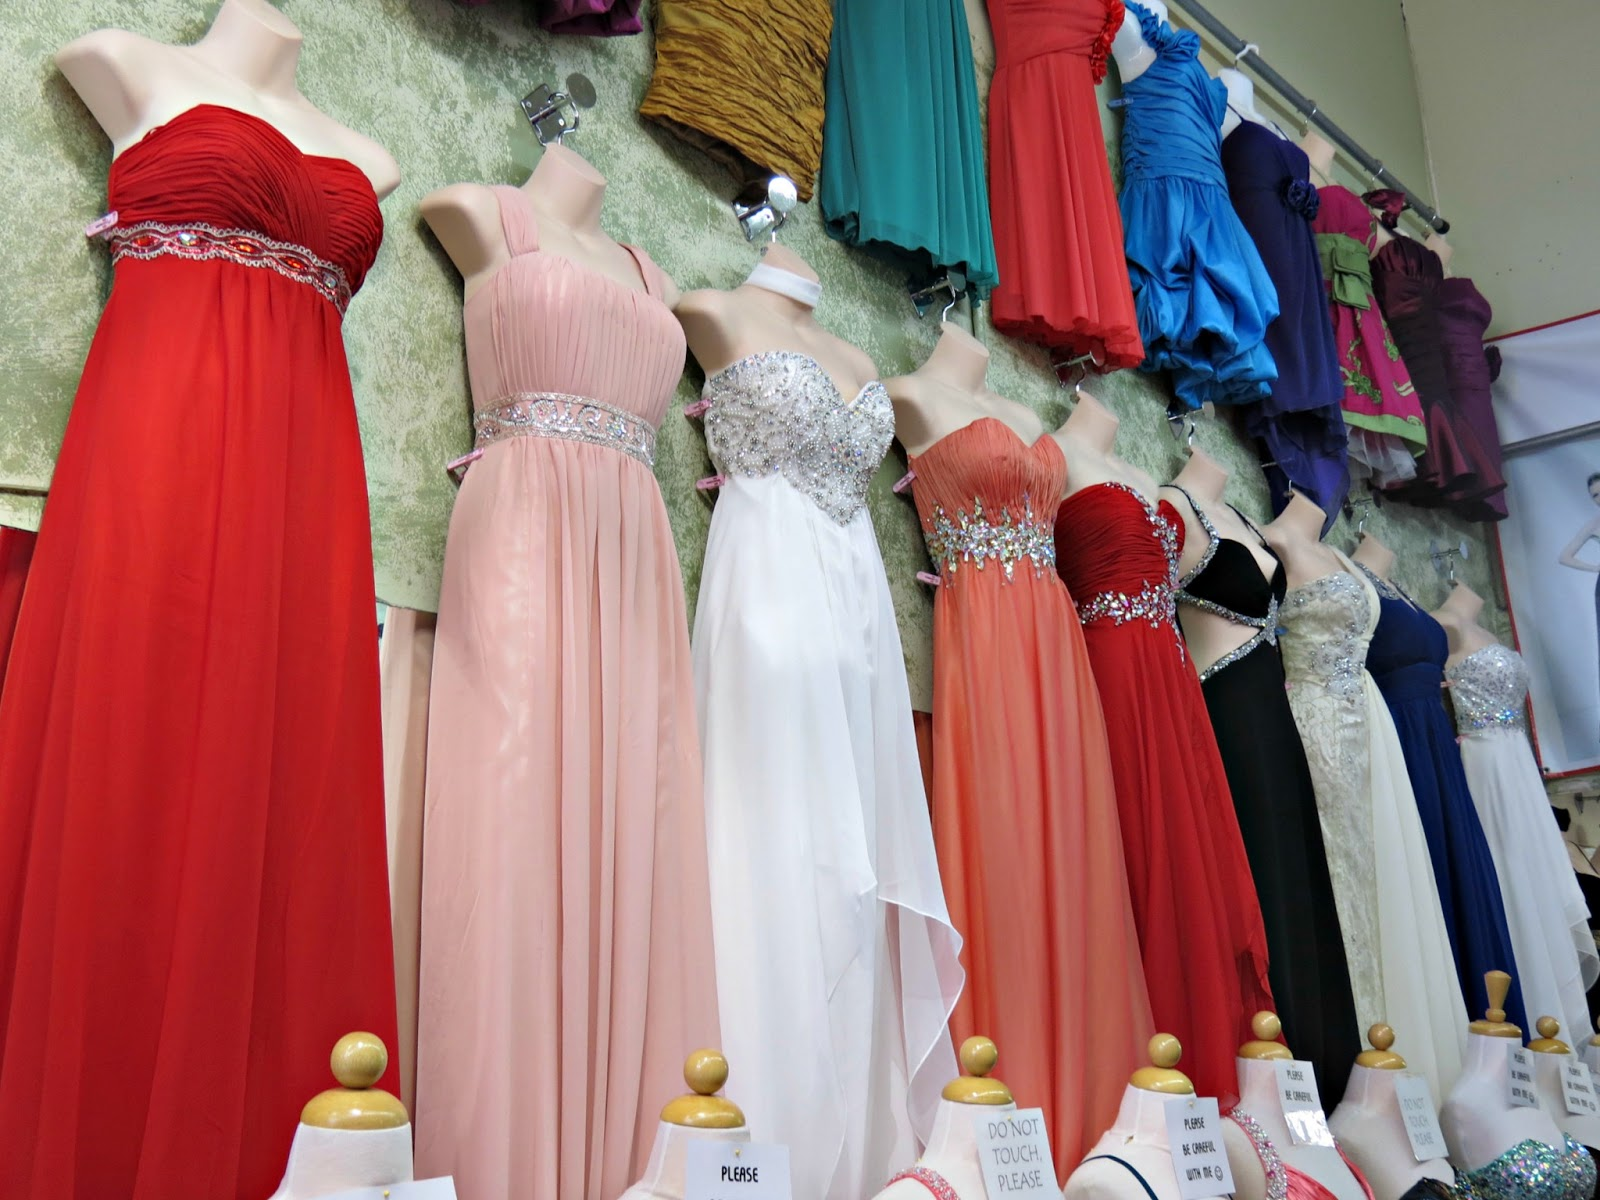 Emejing Prom Dresses In Los Angeles Gallery Awesome Wedding